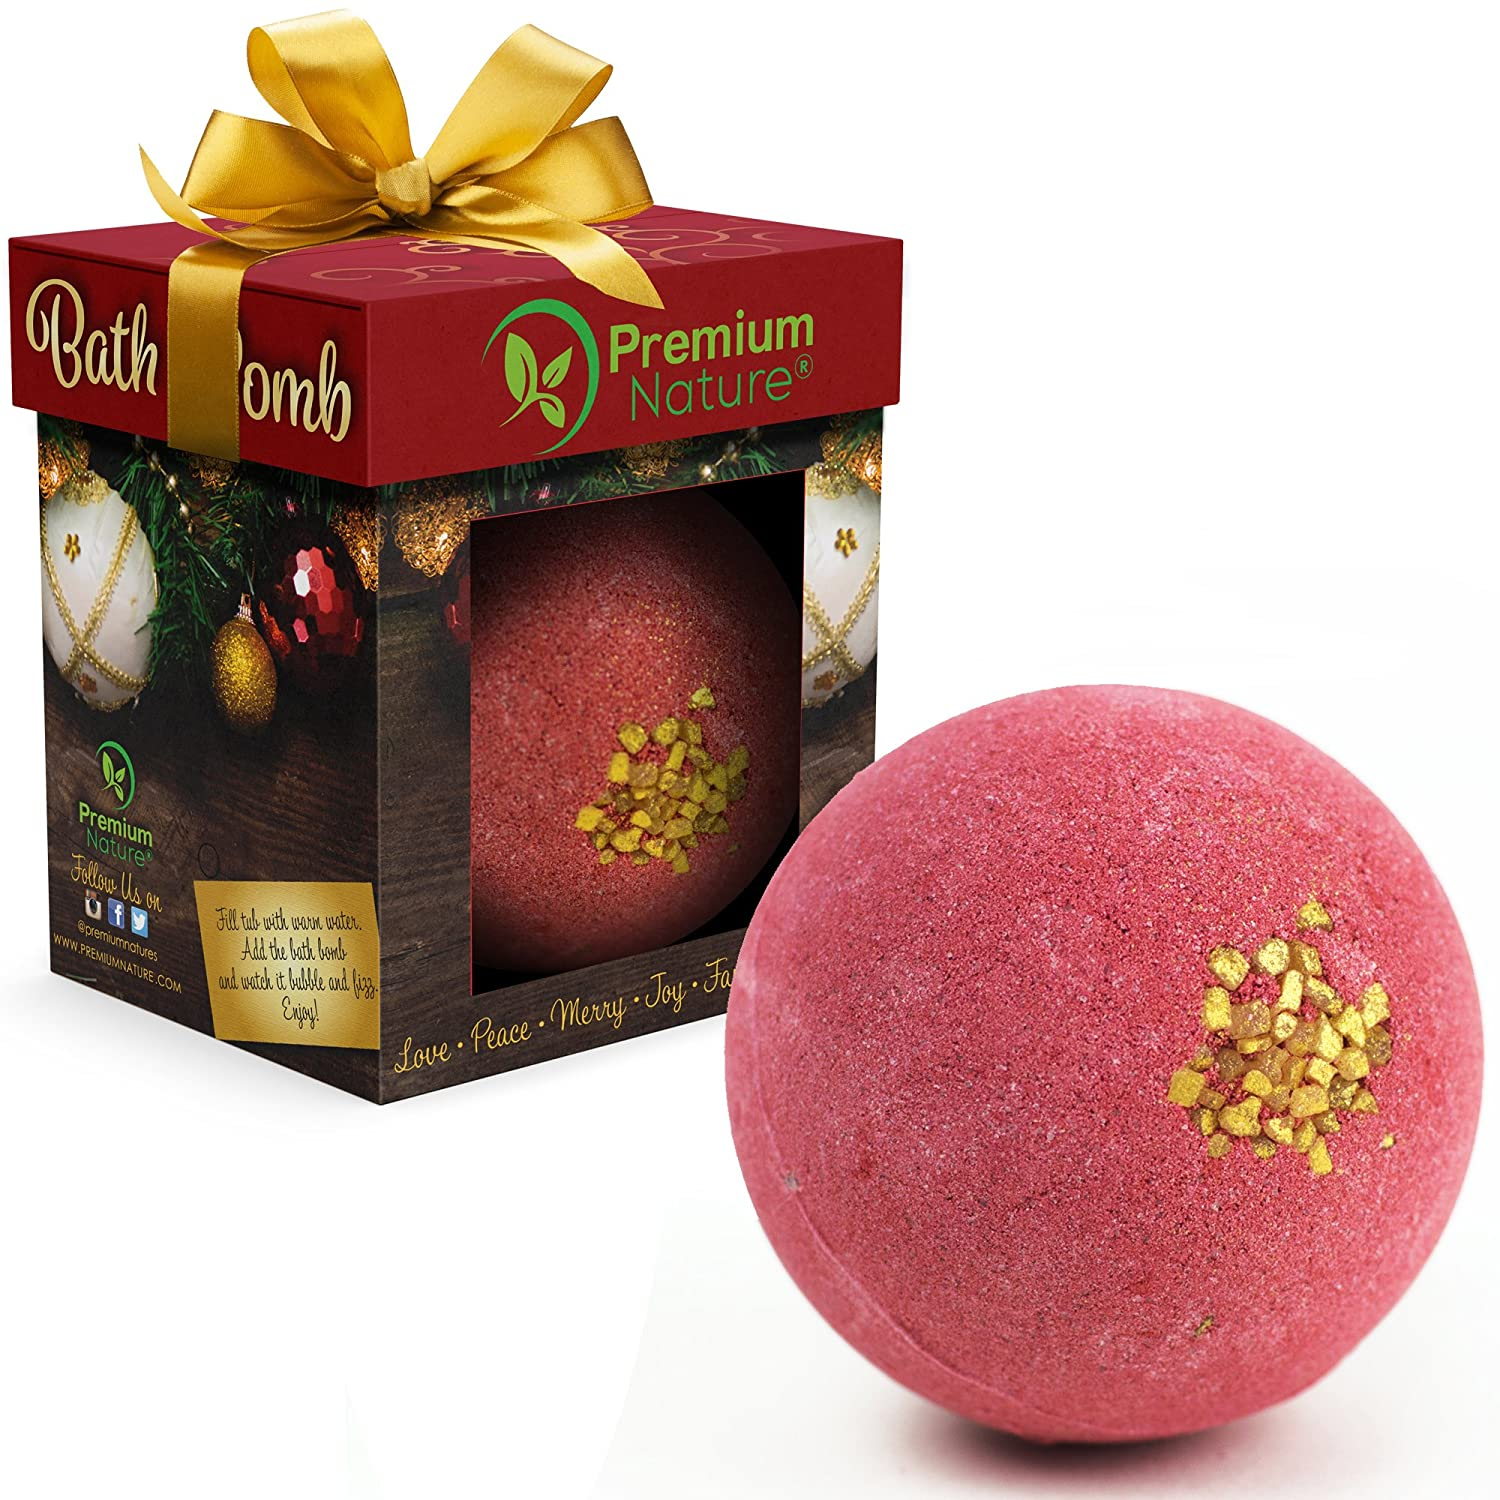 Holiday Bath Bomb Gift - Individually Packaged Christmas Bubble Bath Fizzy With Relaxing Scent, Bathtub Essential Oils For Soft And Moisturized Skin, Suitable For Dry And Sensitive Skin Premium Nature